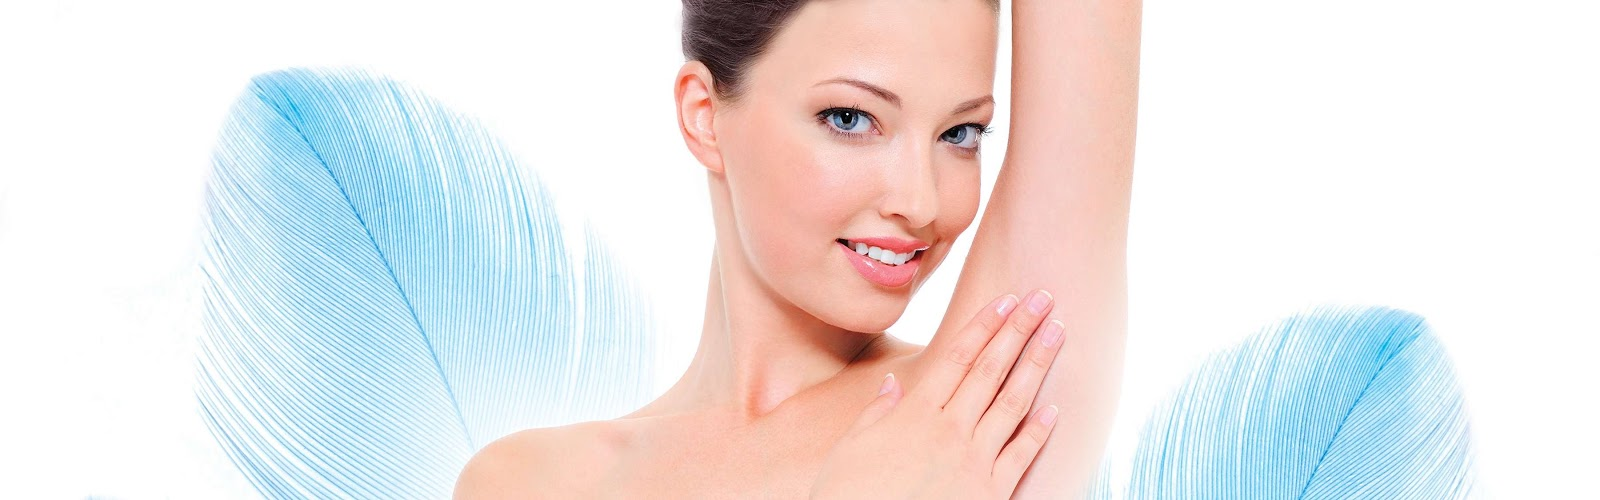 Apilus Platinum Pure electrolysis treatments